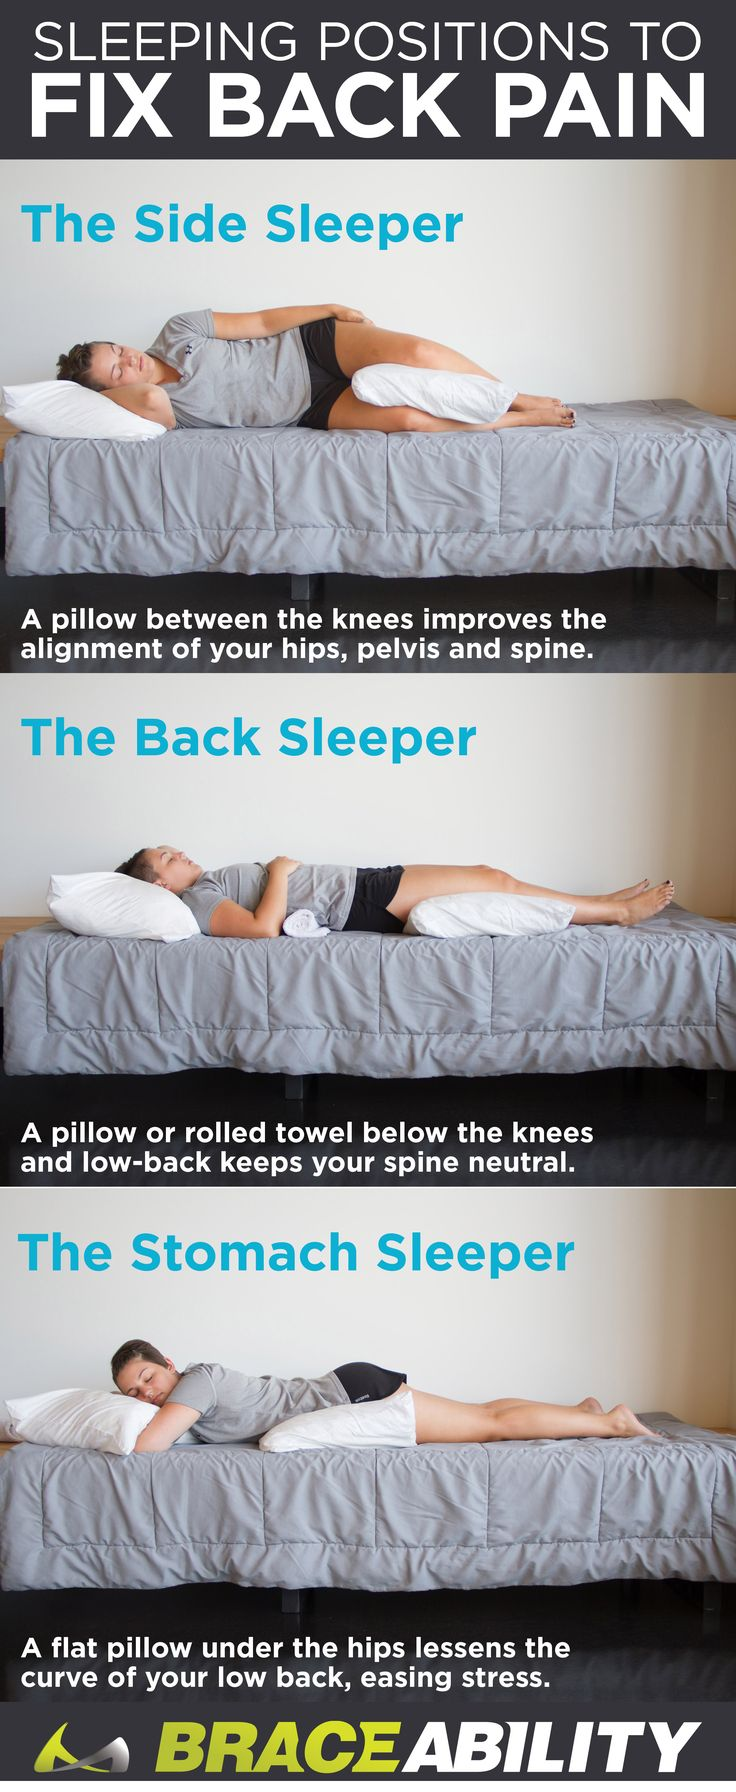 What's the best sleep position for back pain? Using a strategically placed pillow (or two) can reduce stress on the back for side, back and stomach sleepers, easing low-back pain and helping you to get a better night of sleep! Read more here: https://www.braceability.com/blog/7-tips-for-treating-facet-arthropathy/